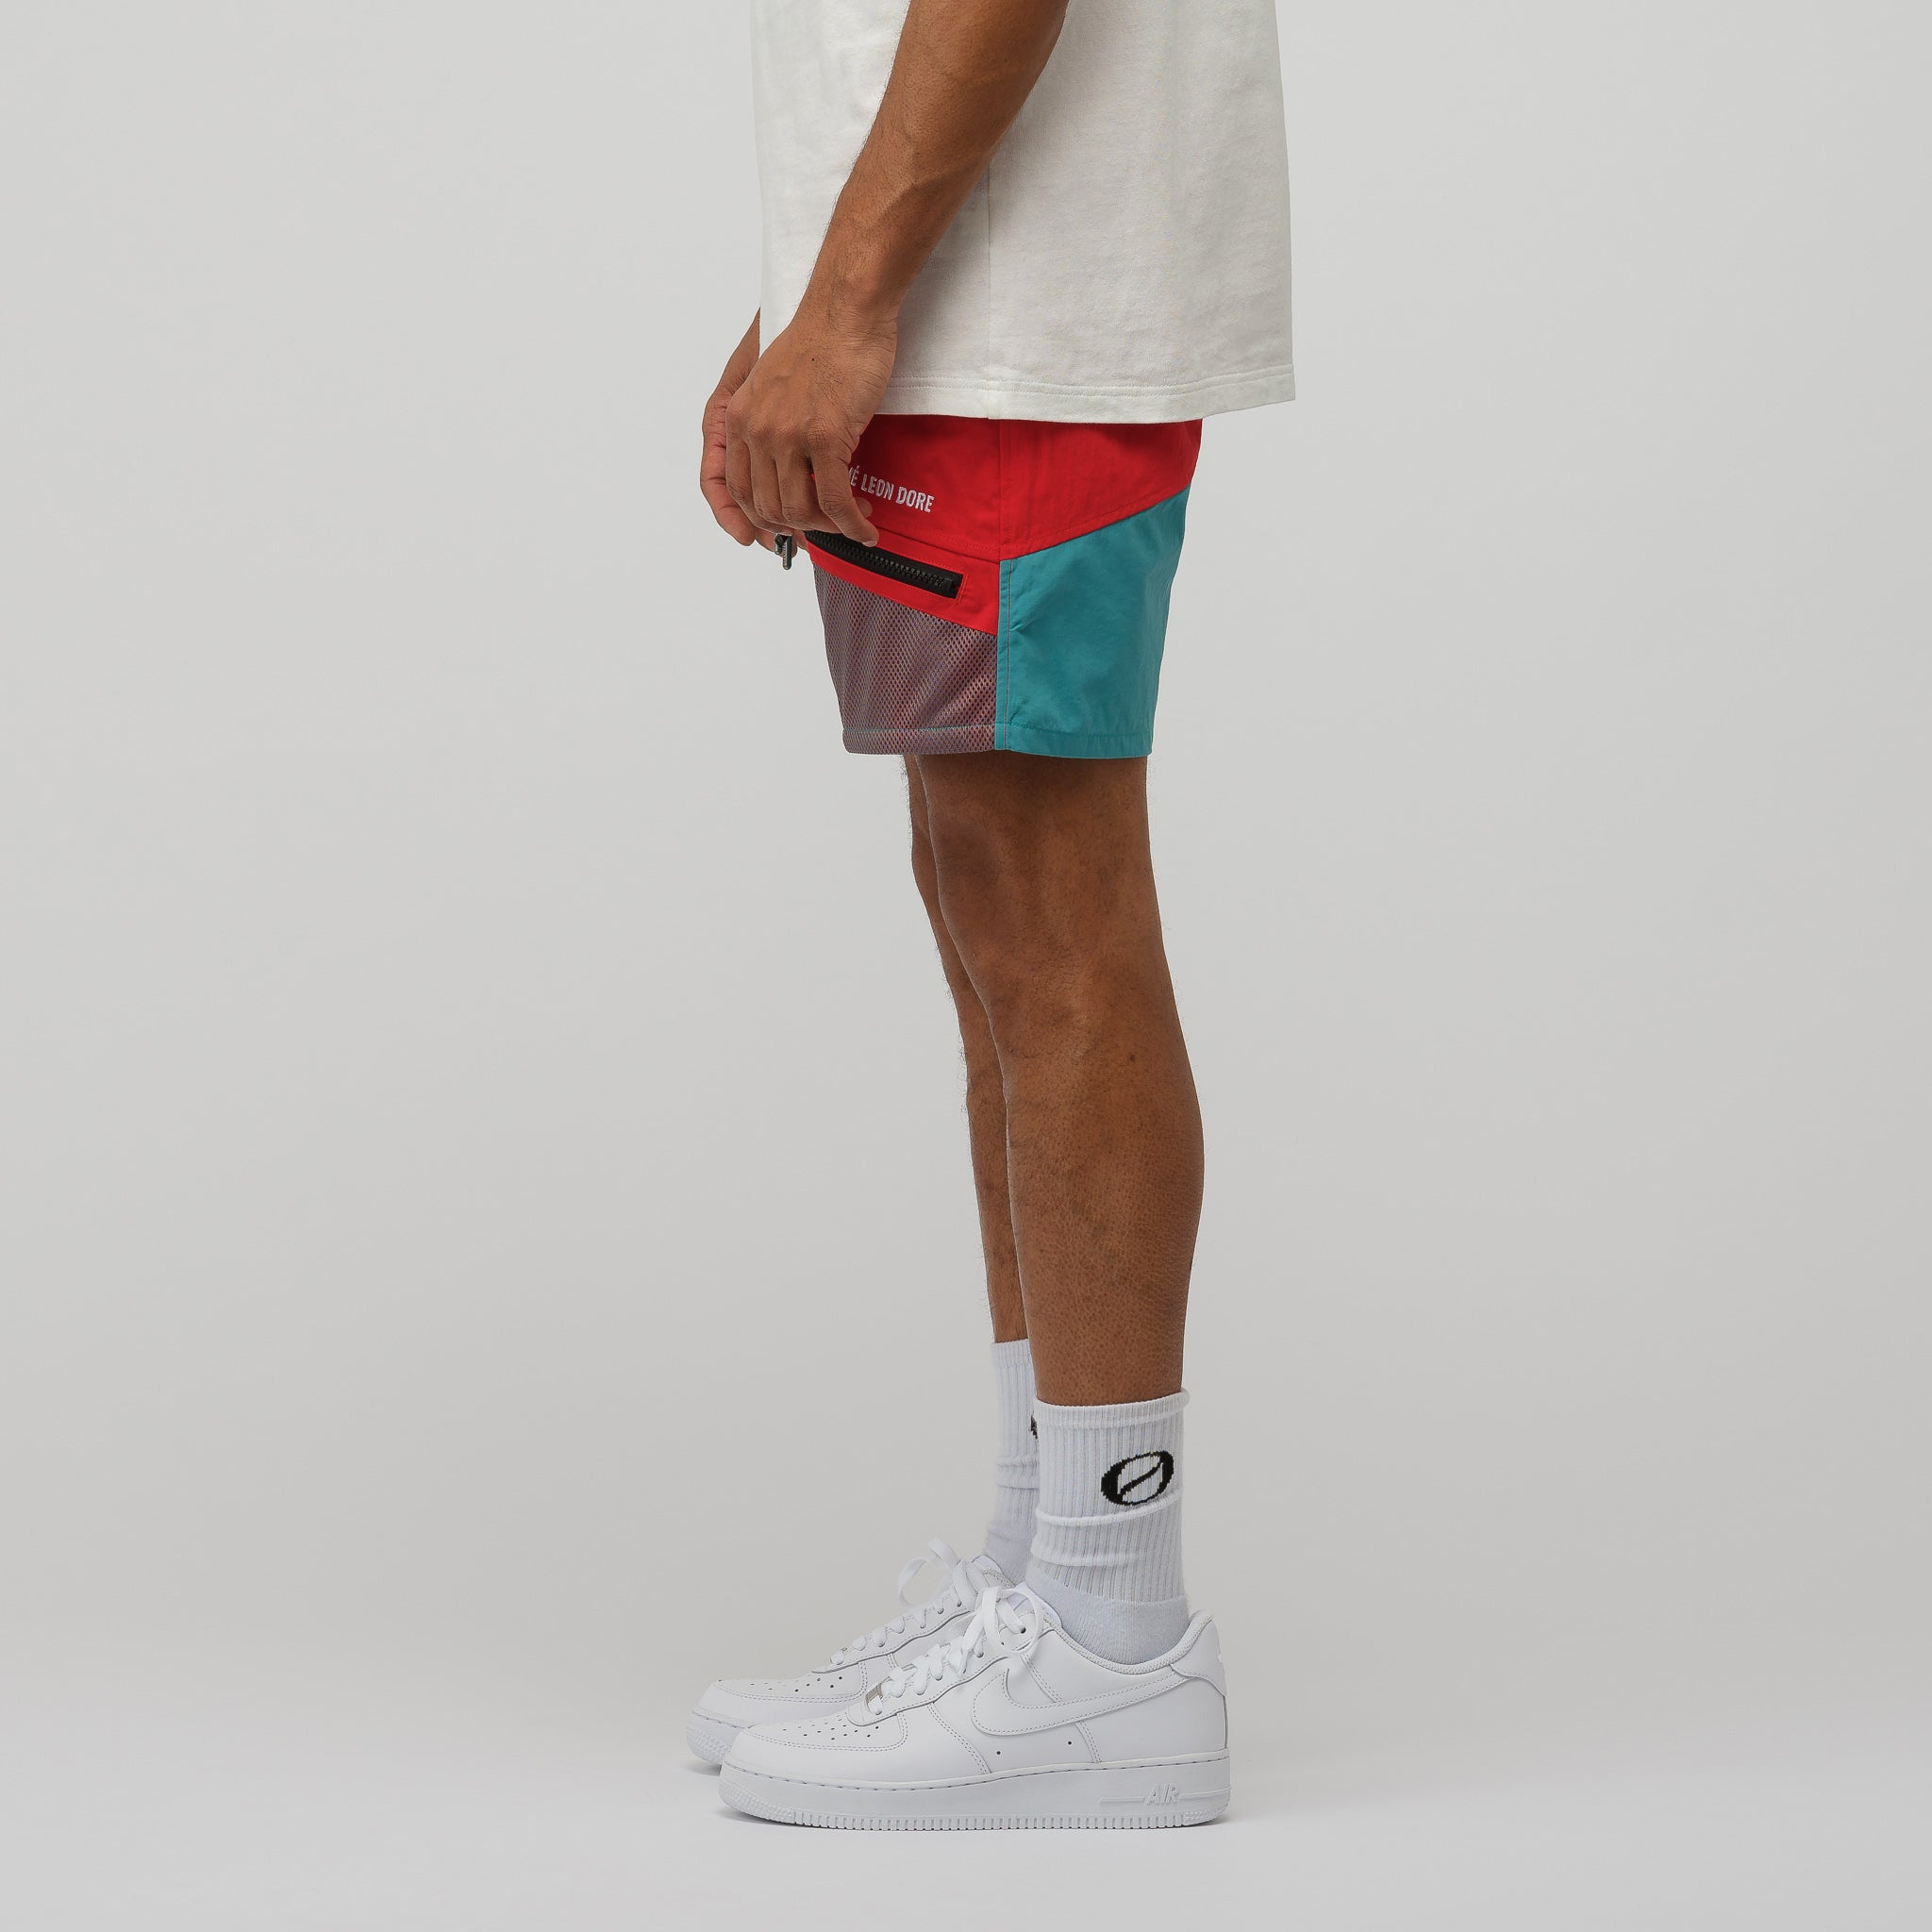 Zipper Pocket Shorts in Mineral Red/Tropical Green